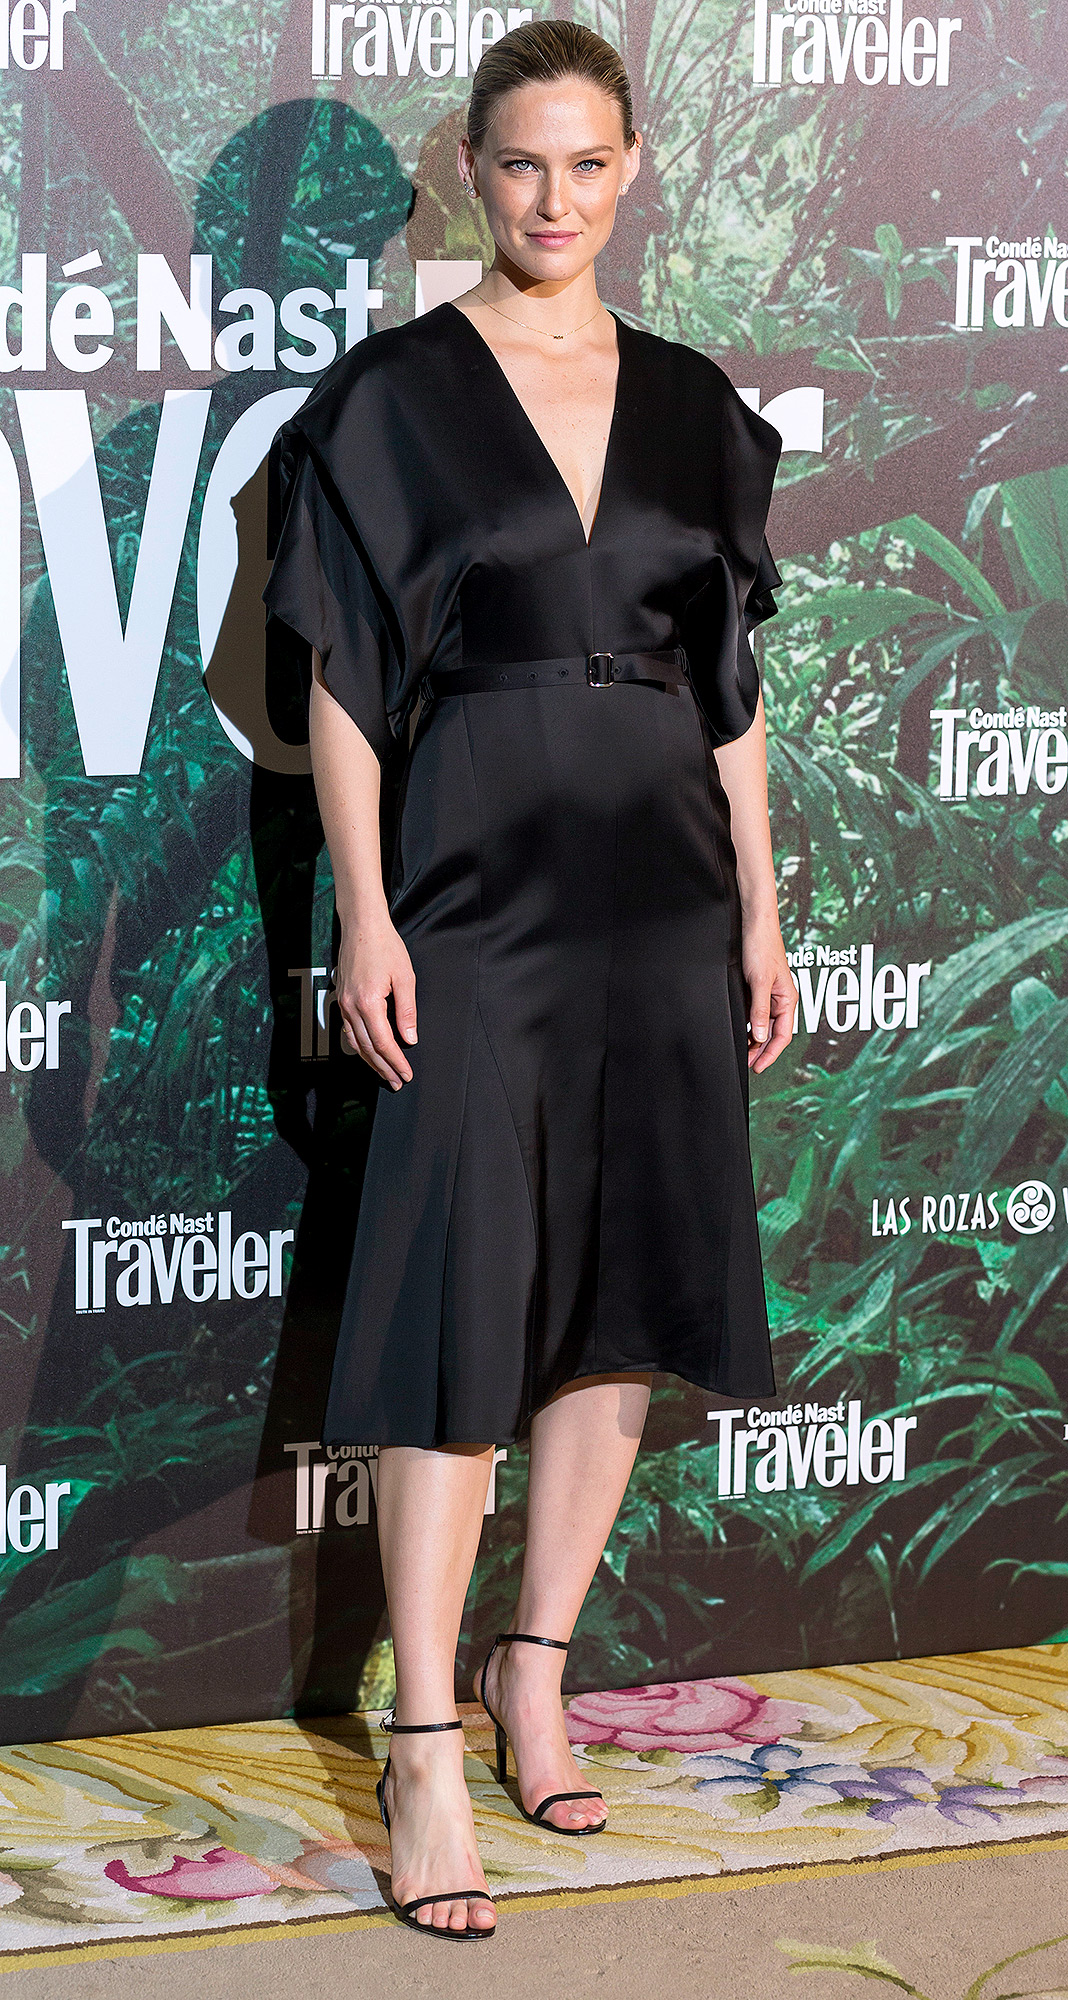 Bar Rafaeli attends the 'Conde Nast Traveler awards' photocall at Ritz hotel on May 4, 2017 in Madrid, Spain